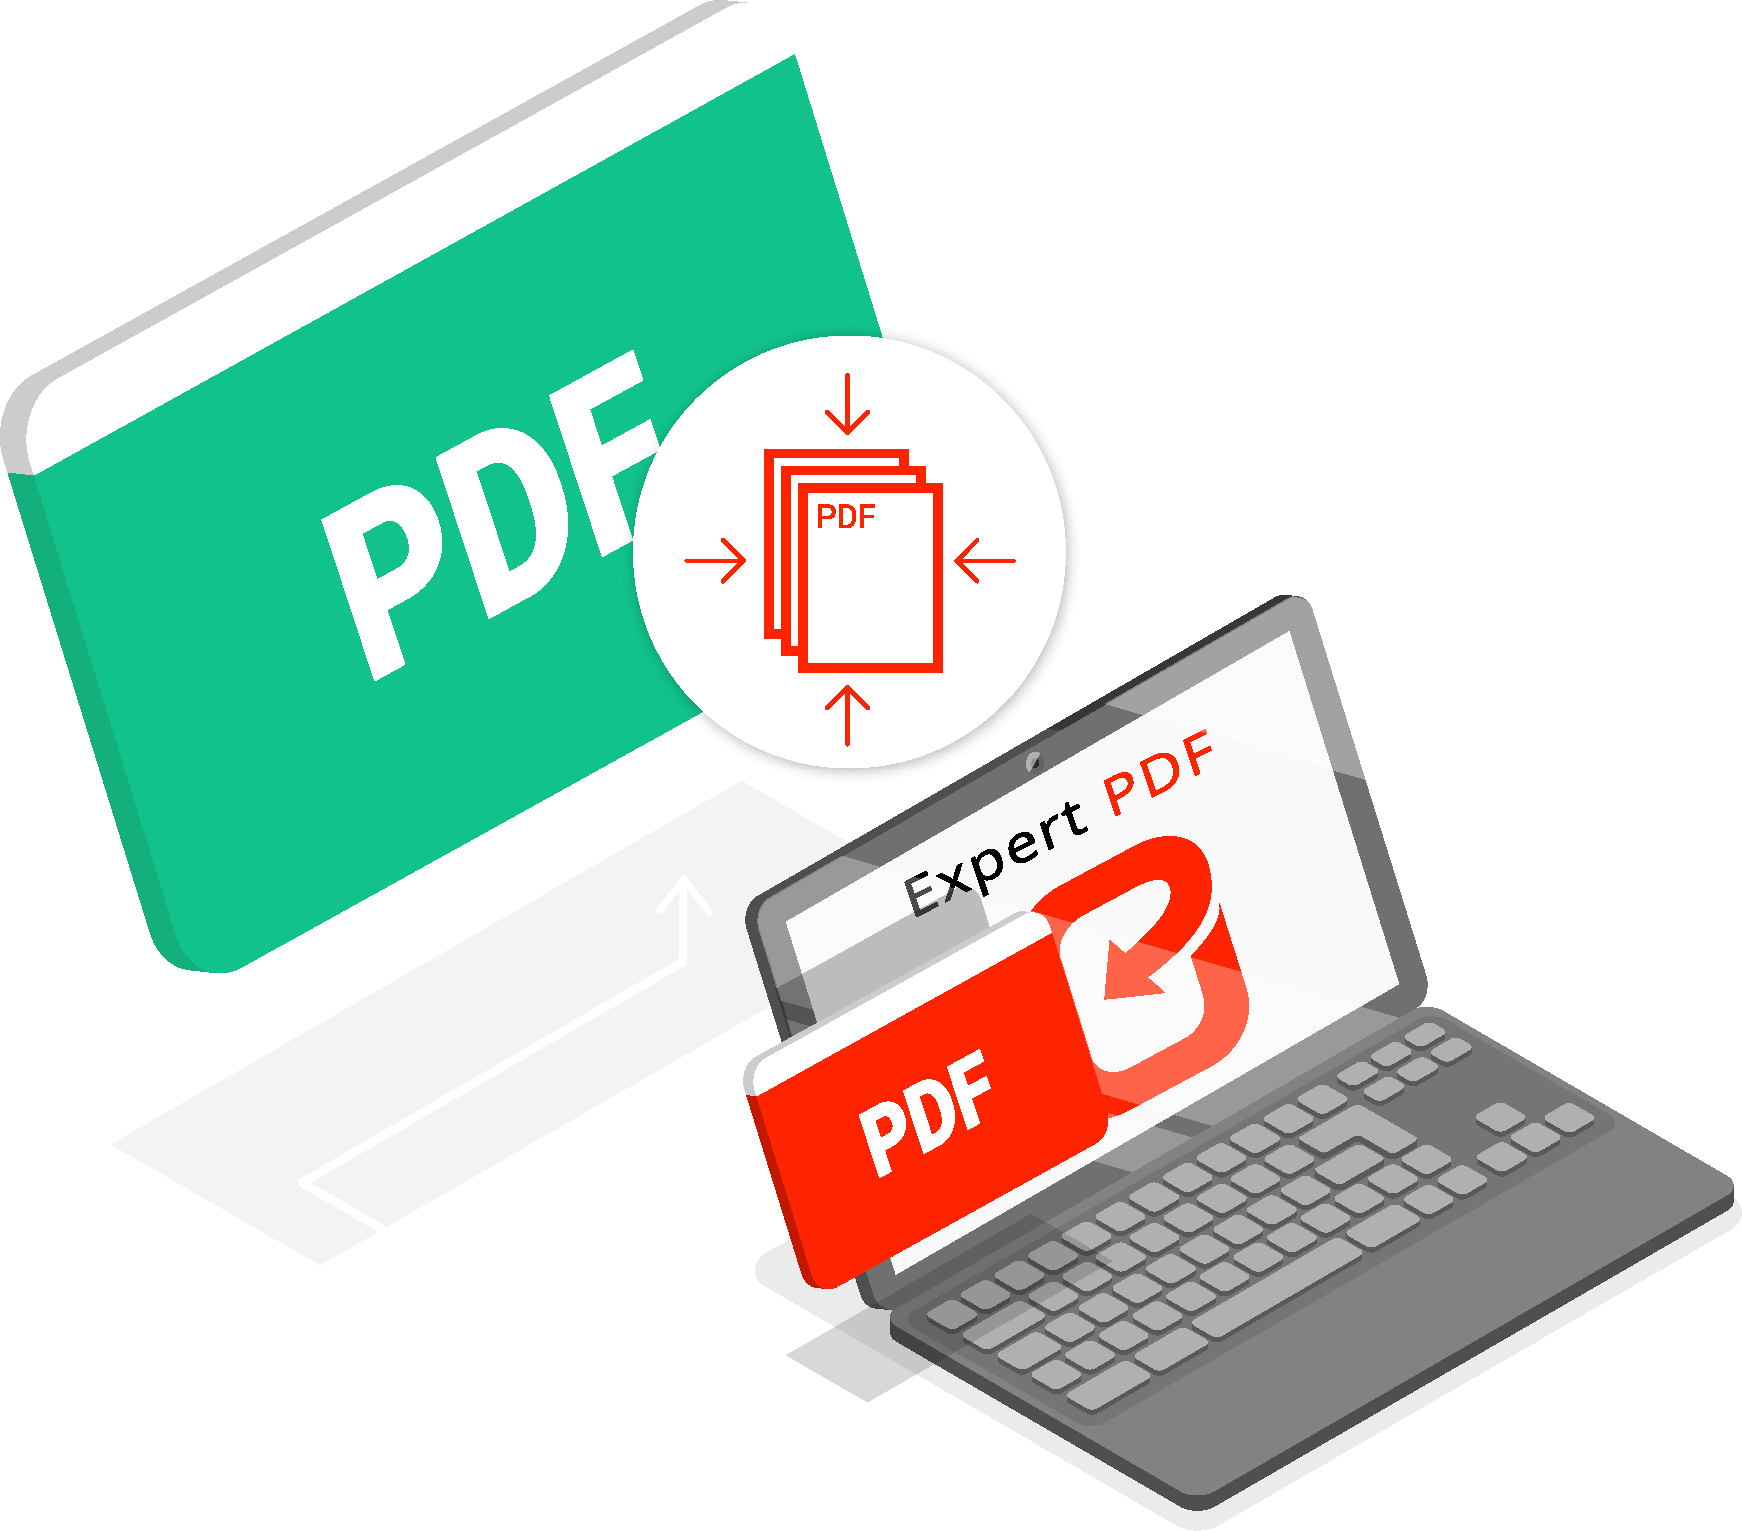 HOW TO COMPRESS A PDF FILE USING EXPERT PDF